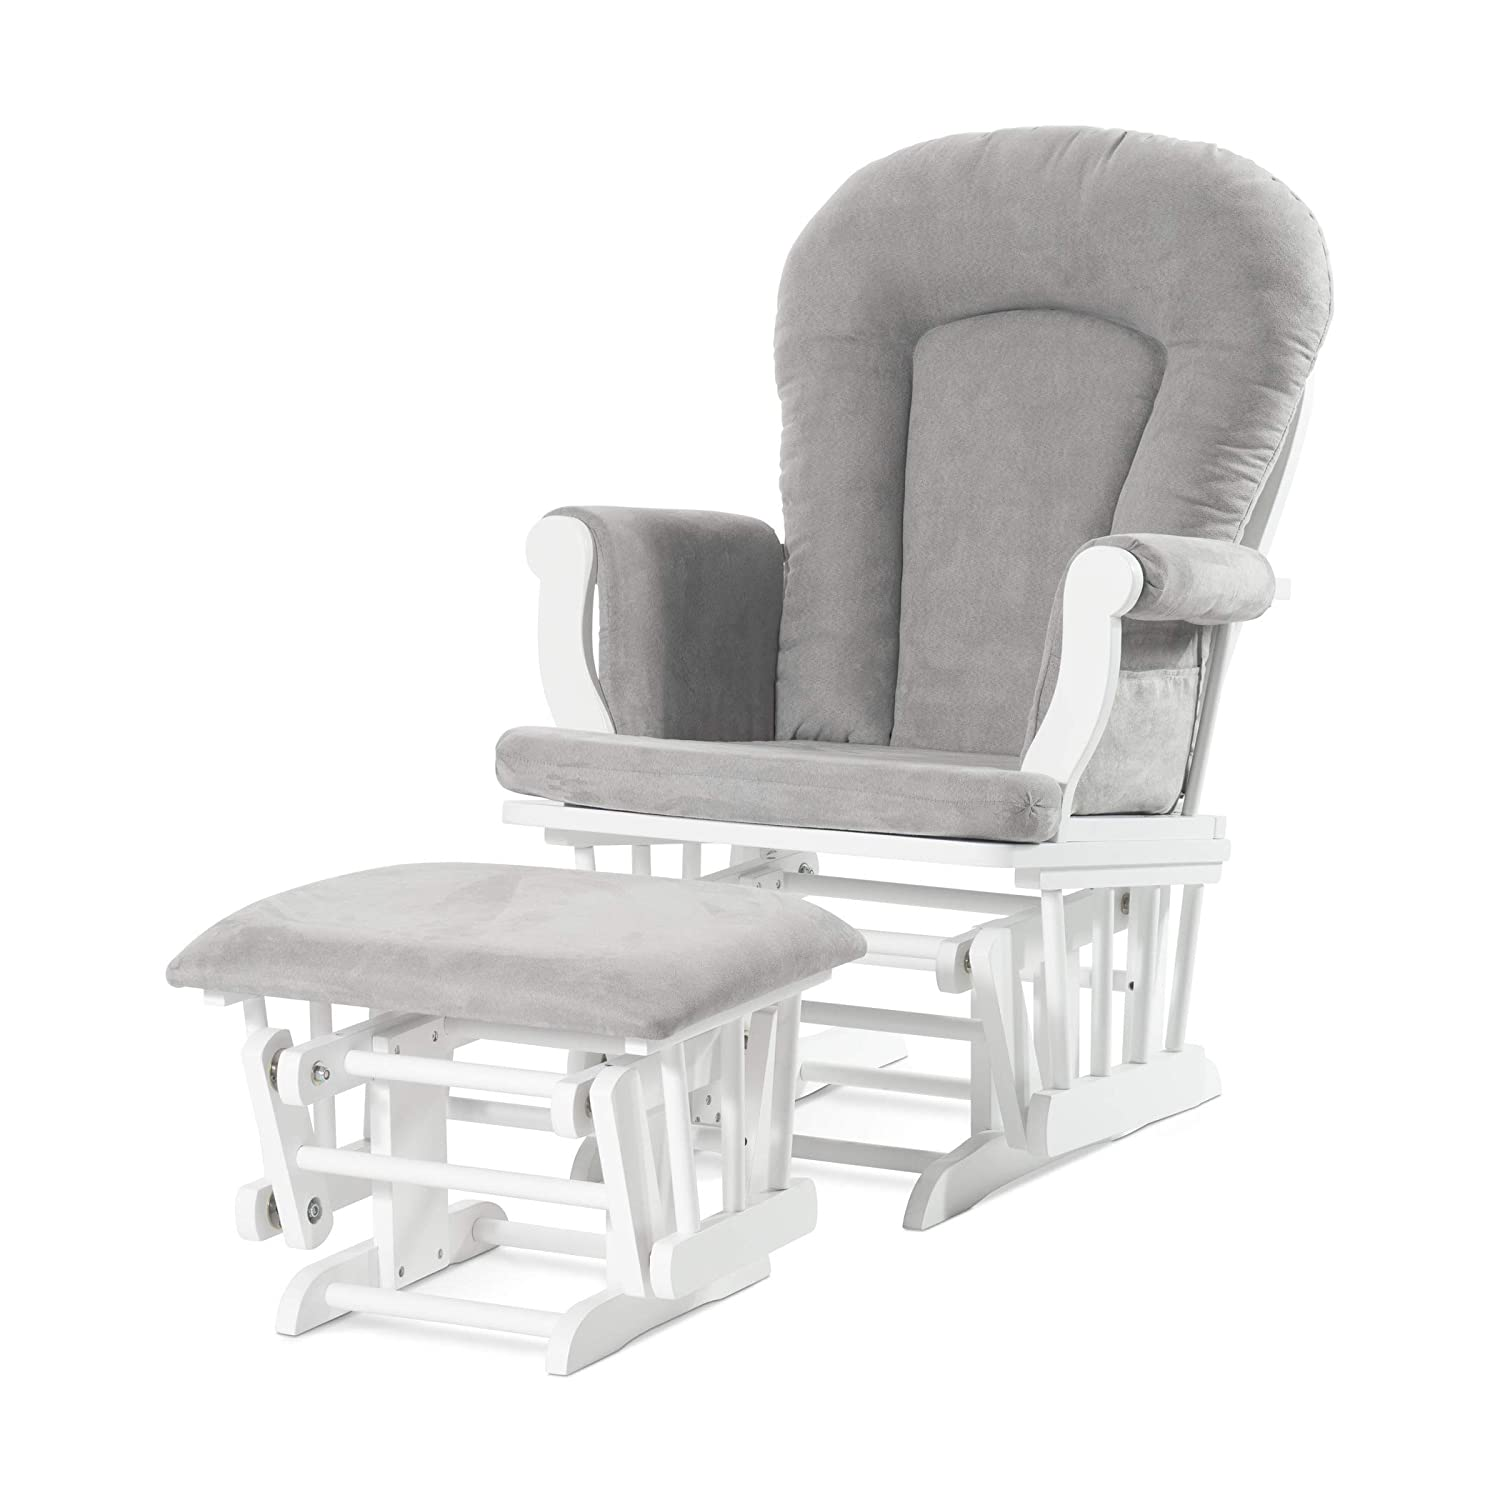 Forever Eclectic by Child Craft Cozy Glider and Ottoman, Matte White with Light Gray Cushion